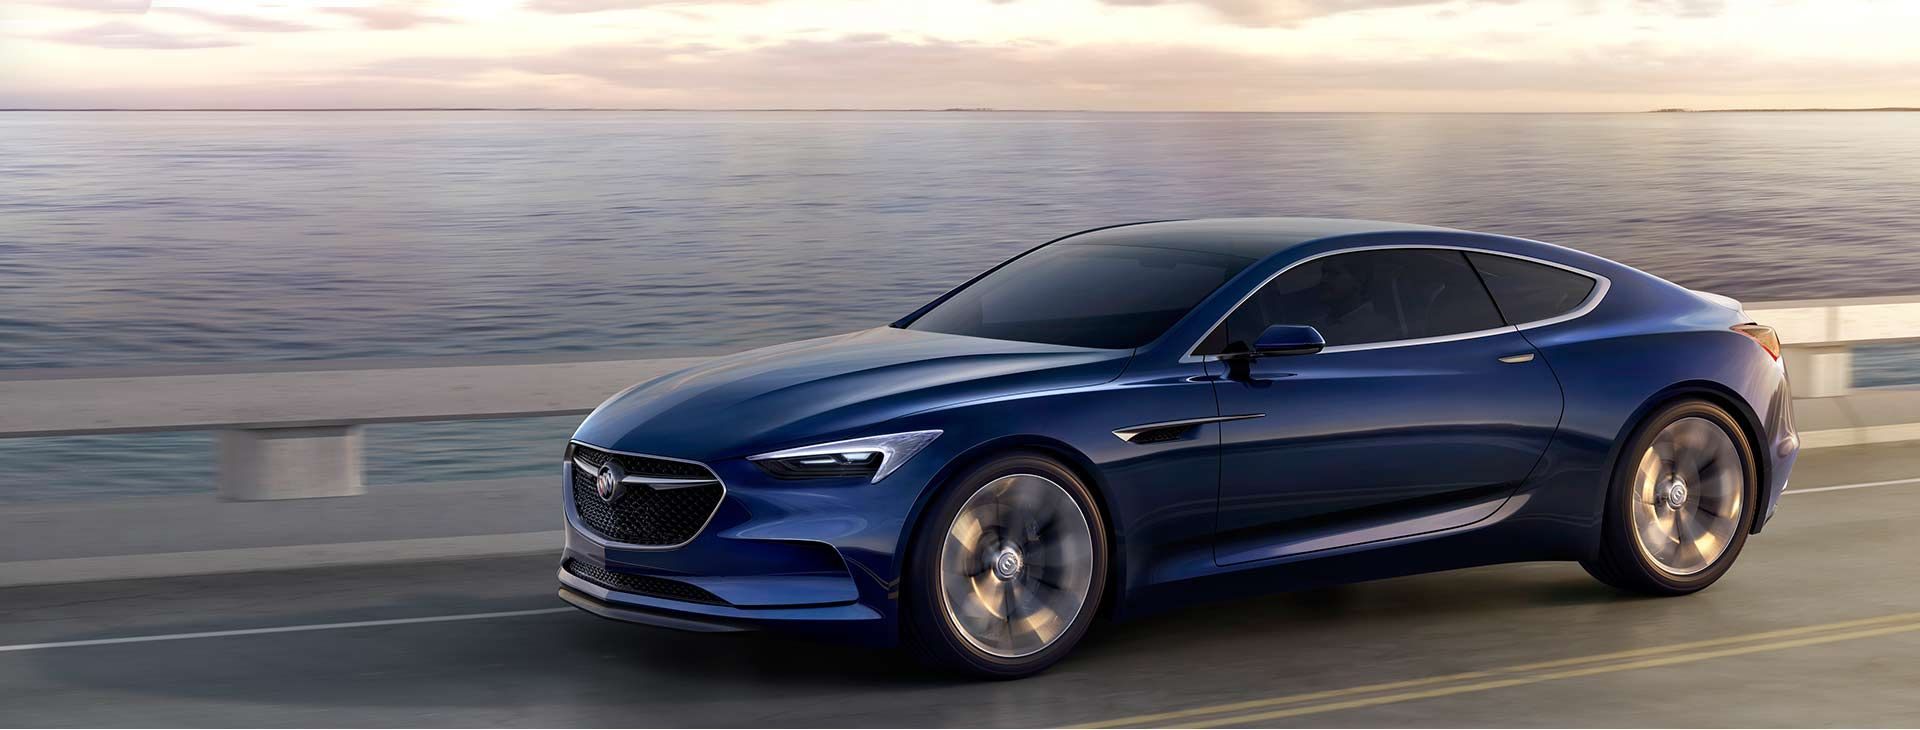 The Buick Avista Concept Vehicle Was Designed To Embody Combination Of Beauty And Performance